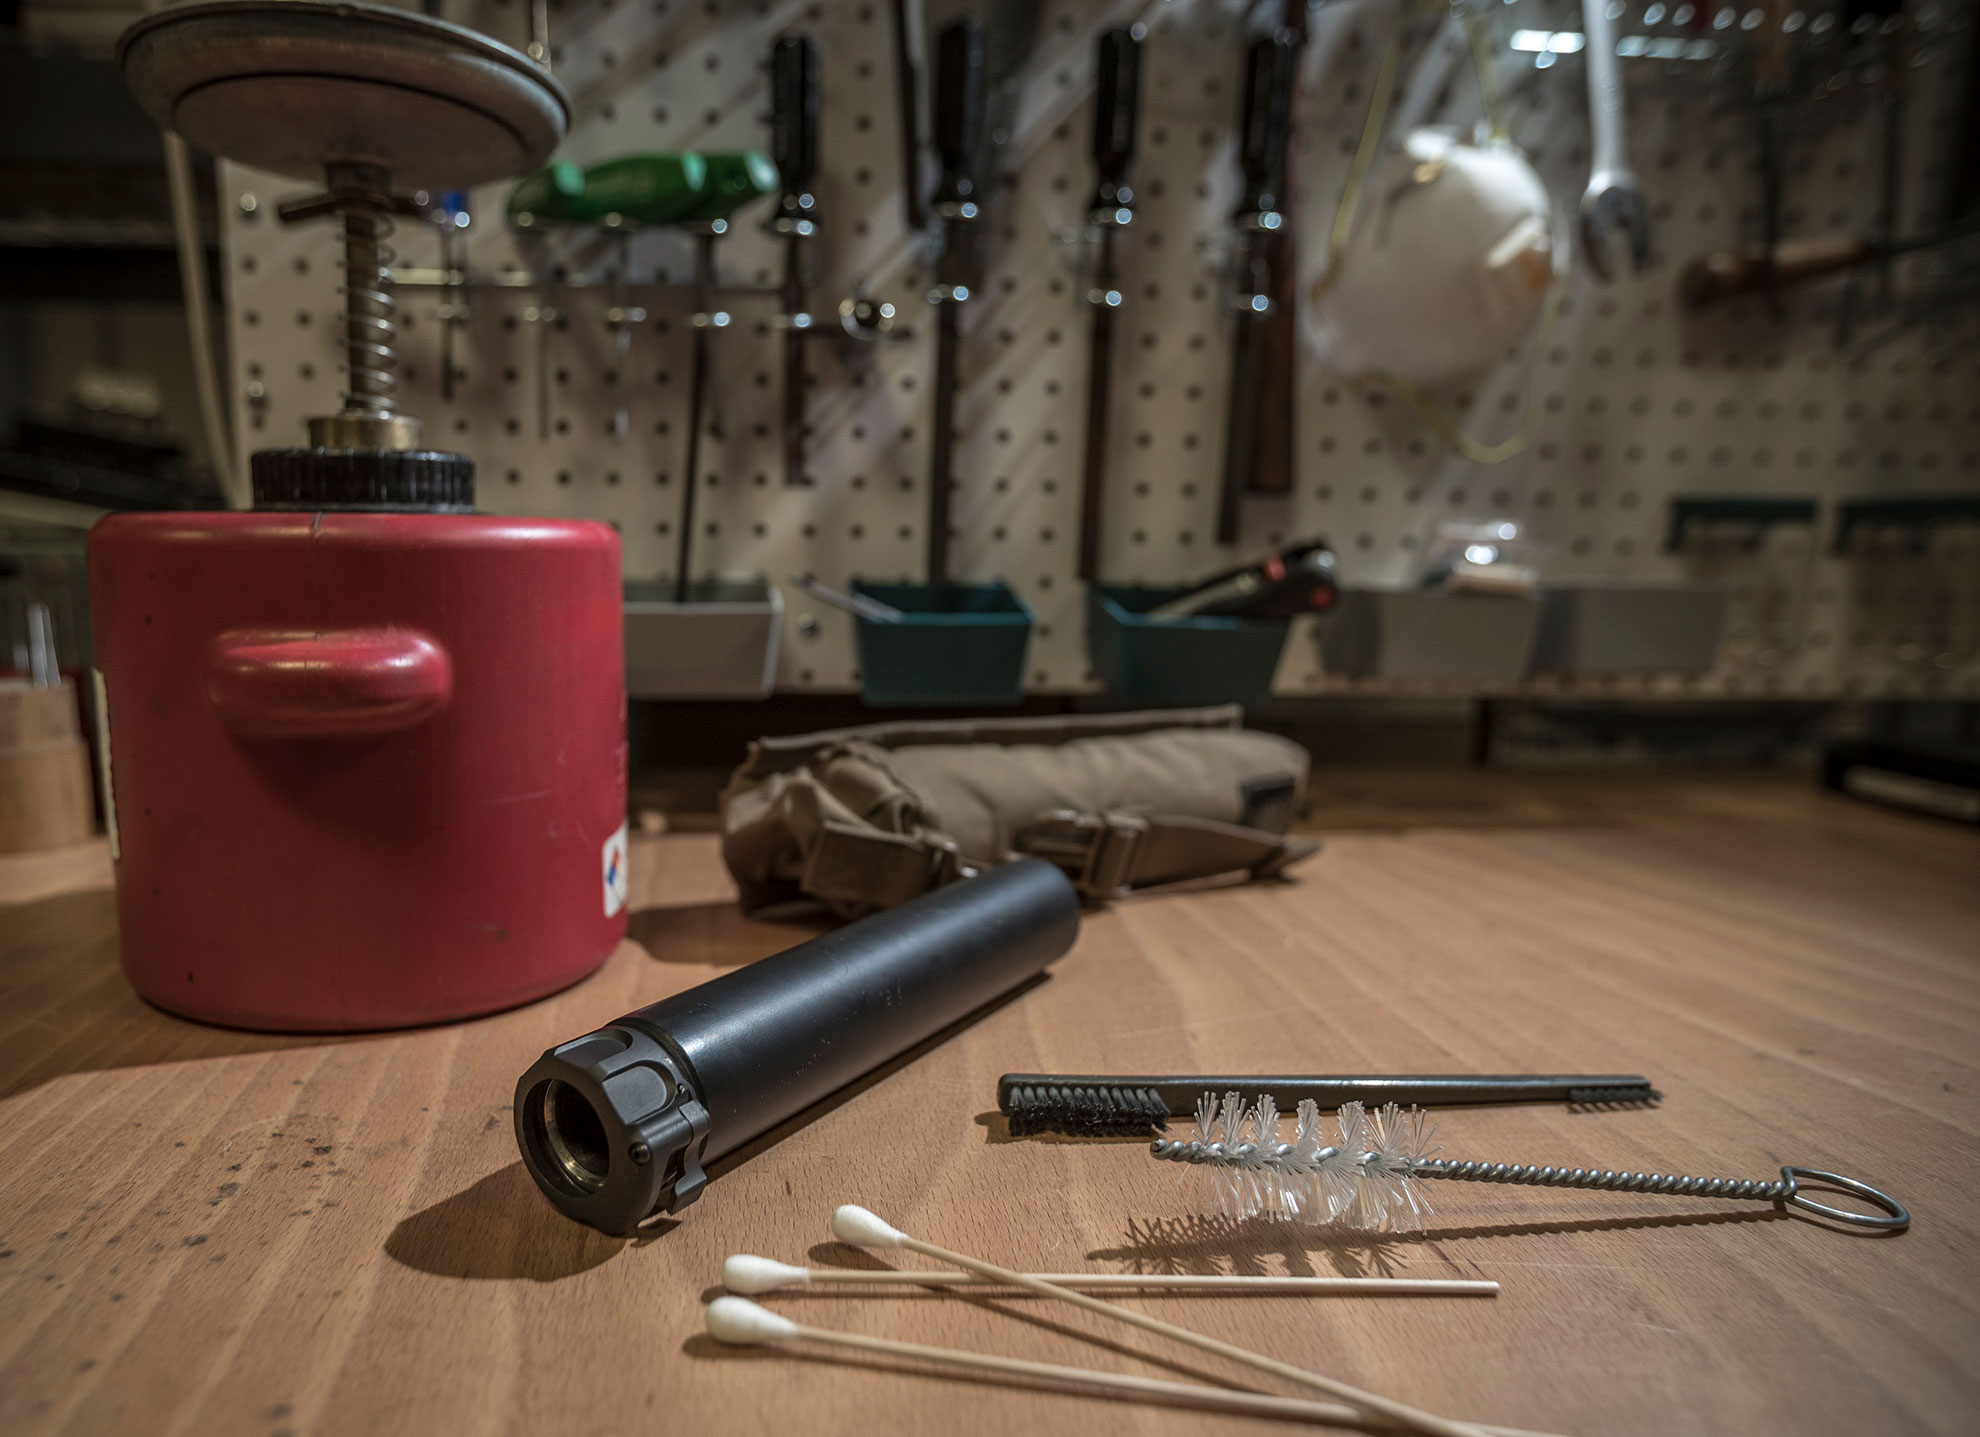 SureFire Suppressor Cleaning and Maintenance